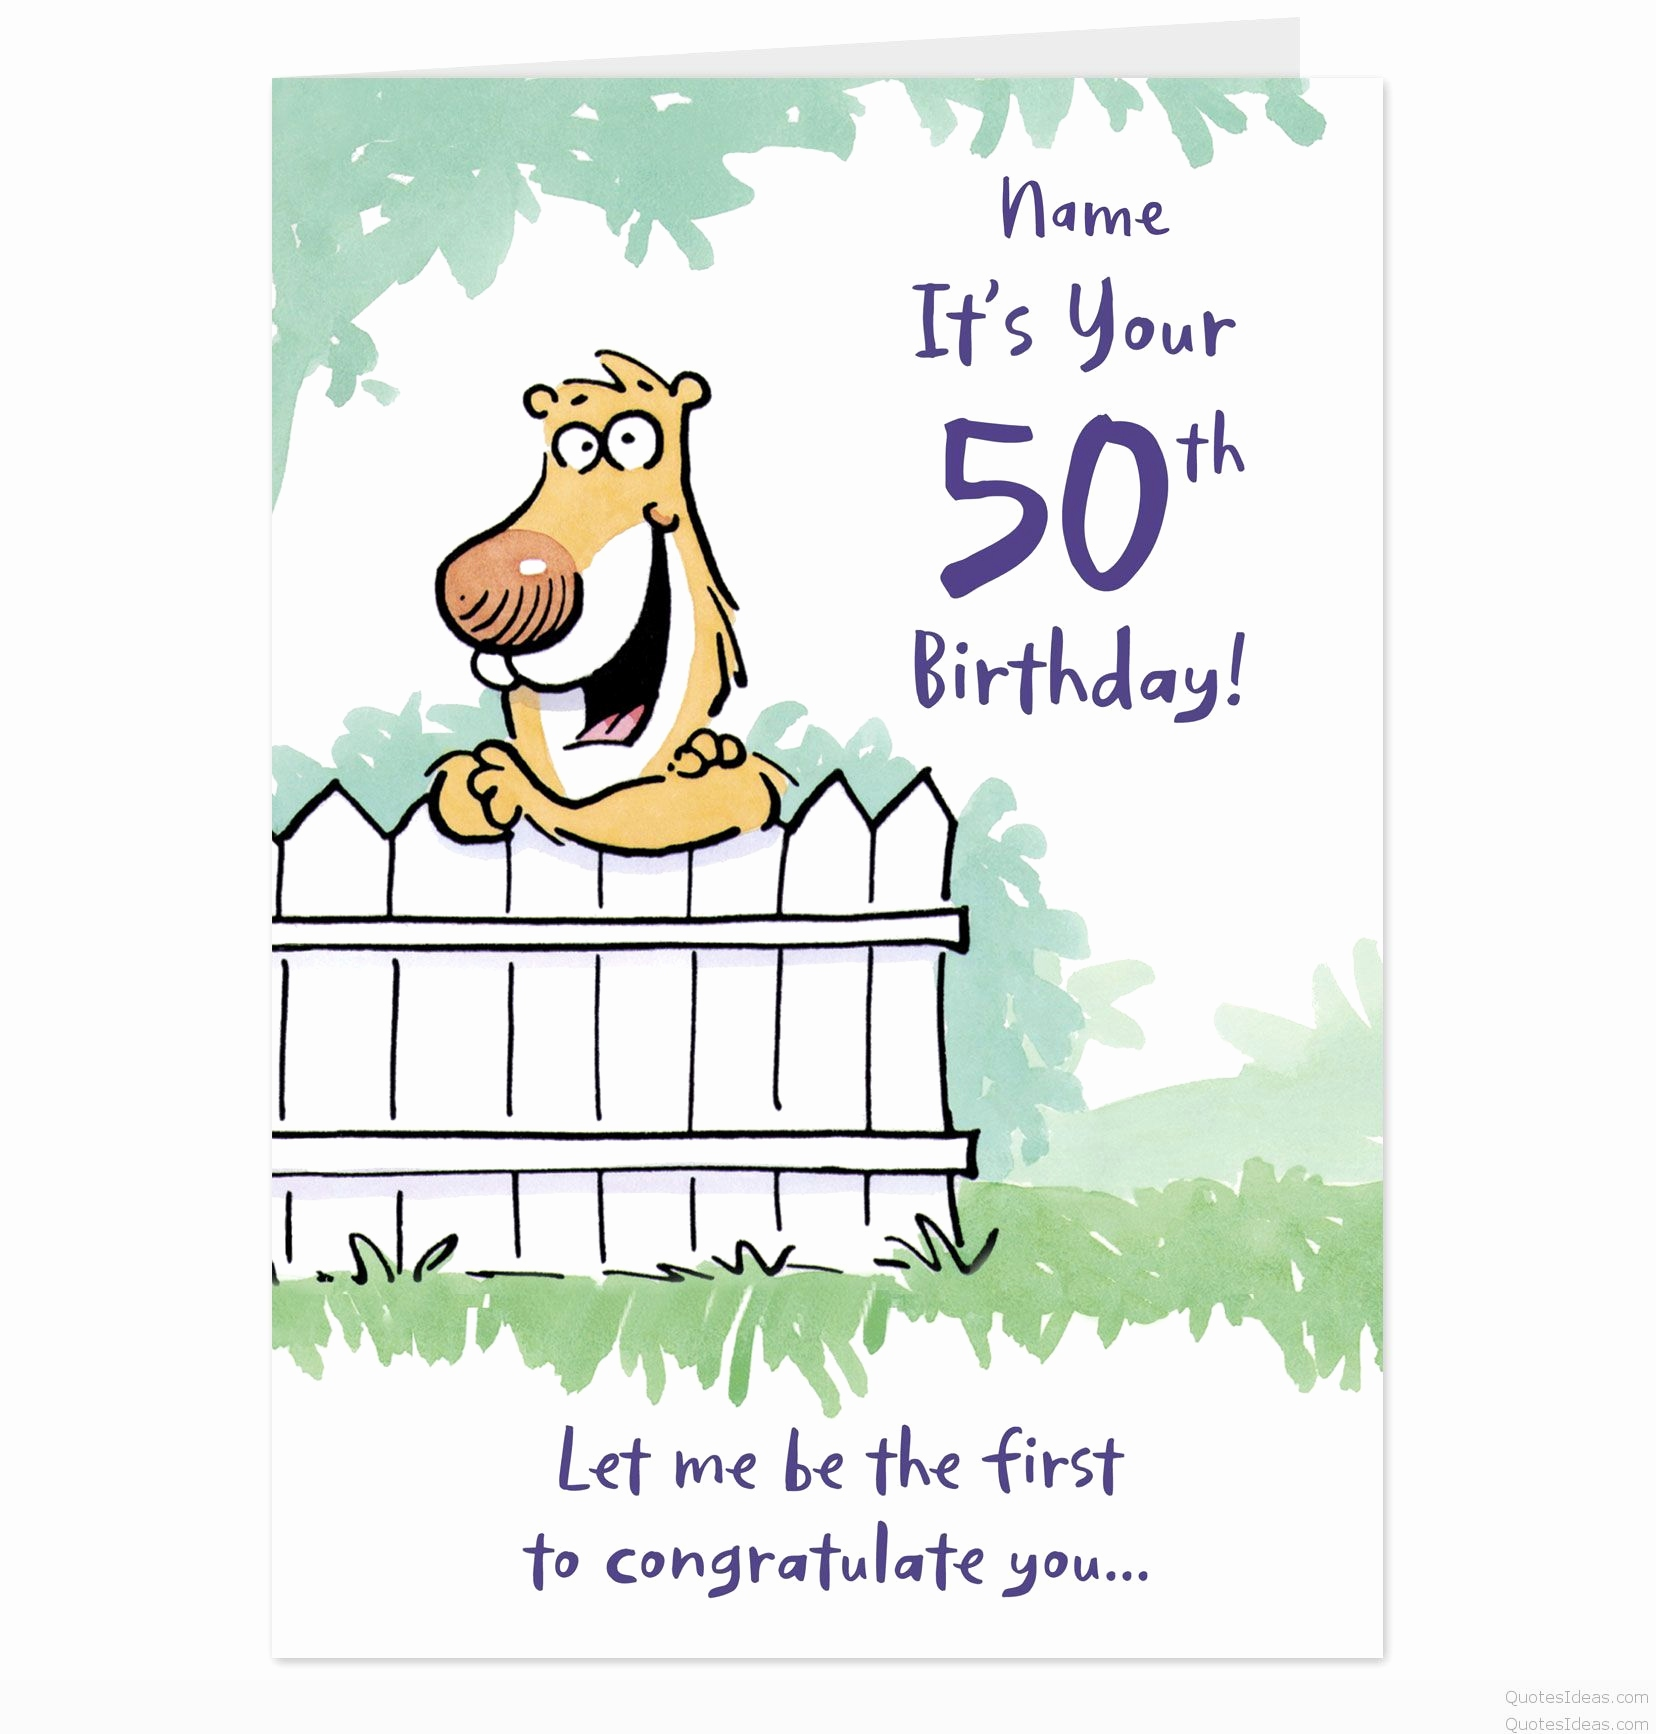 funniest birthday card messages ; birthday-card-messages-for-colleagues-fresh-funny-birthday-card-message-gangcraft-of-birthday-card-messages-for-colleagues